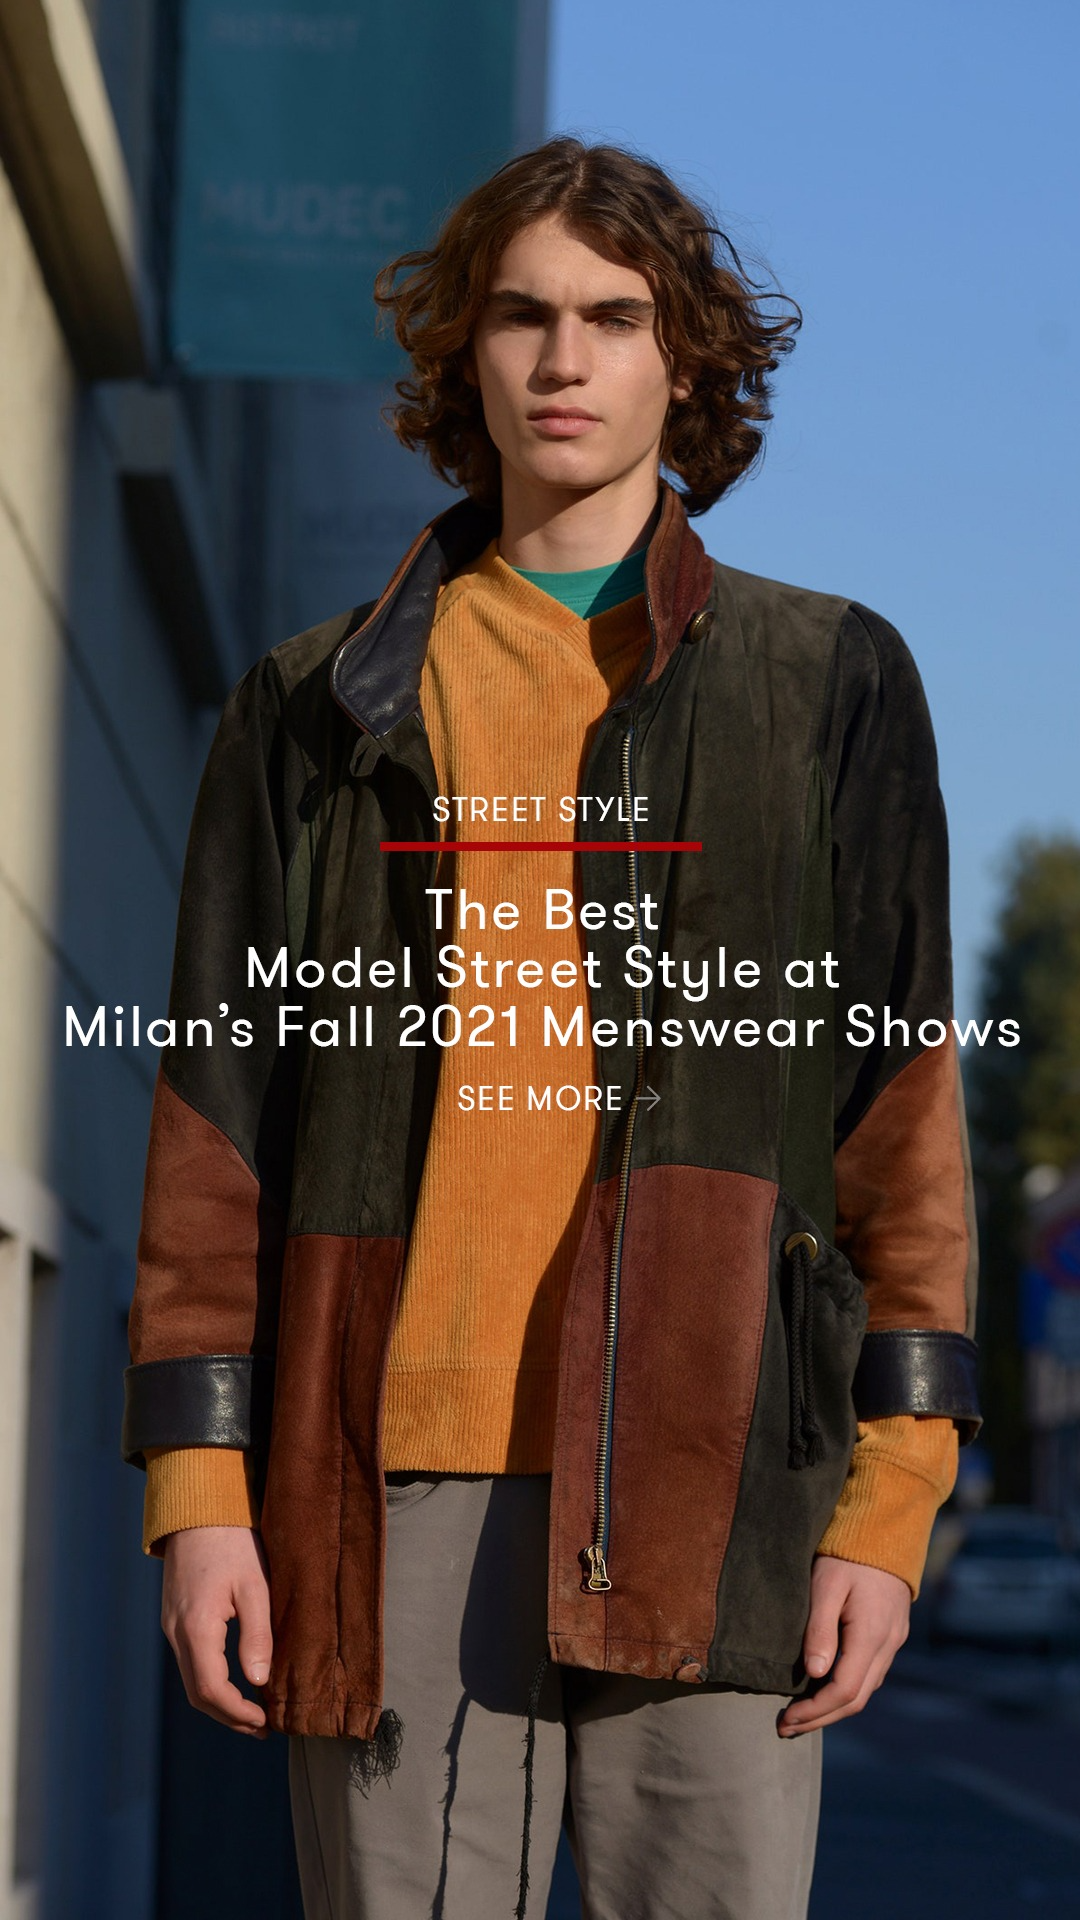 The Best Model Street Style at Milan's Fall 2021 Menswear Shows